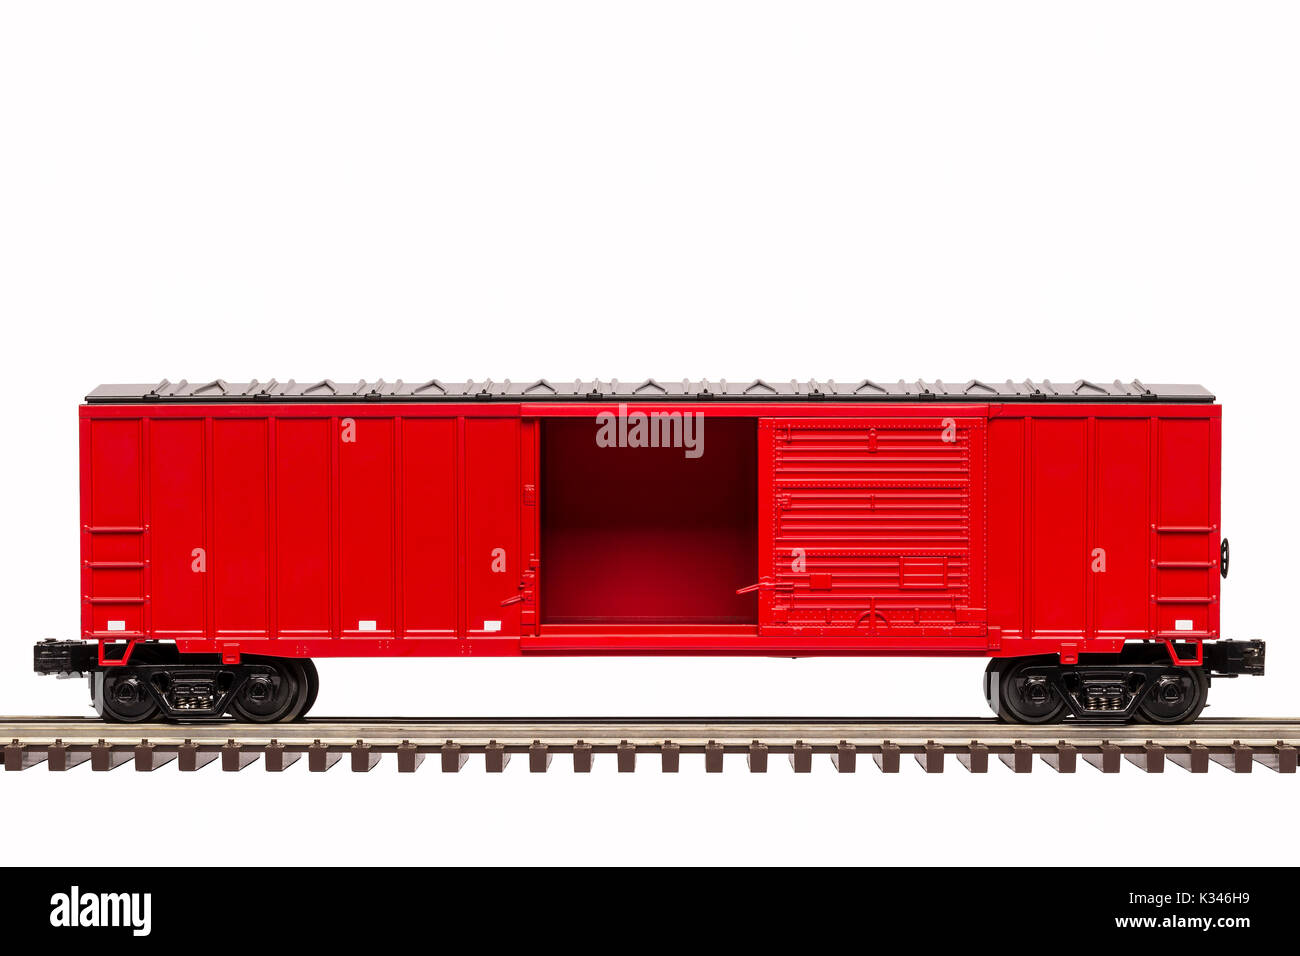 Red Railroad Box Car with Open Door - Stock Image